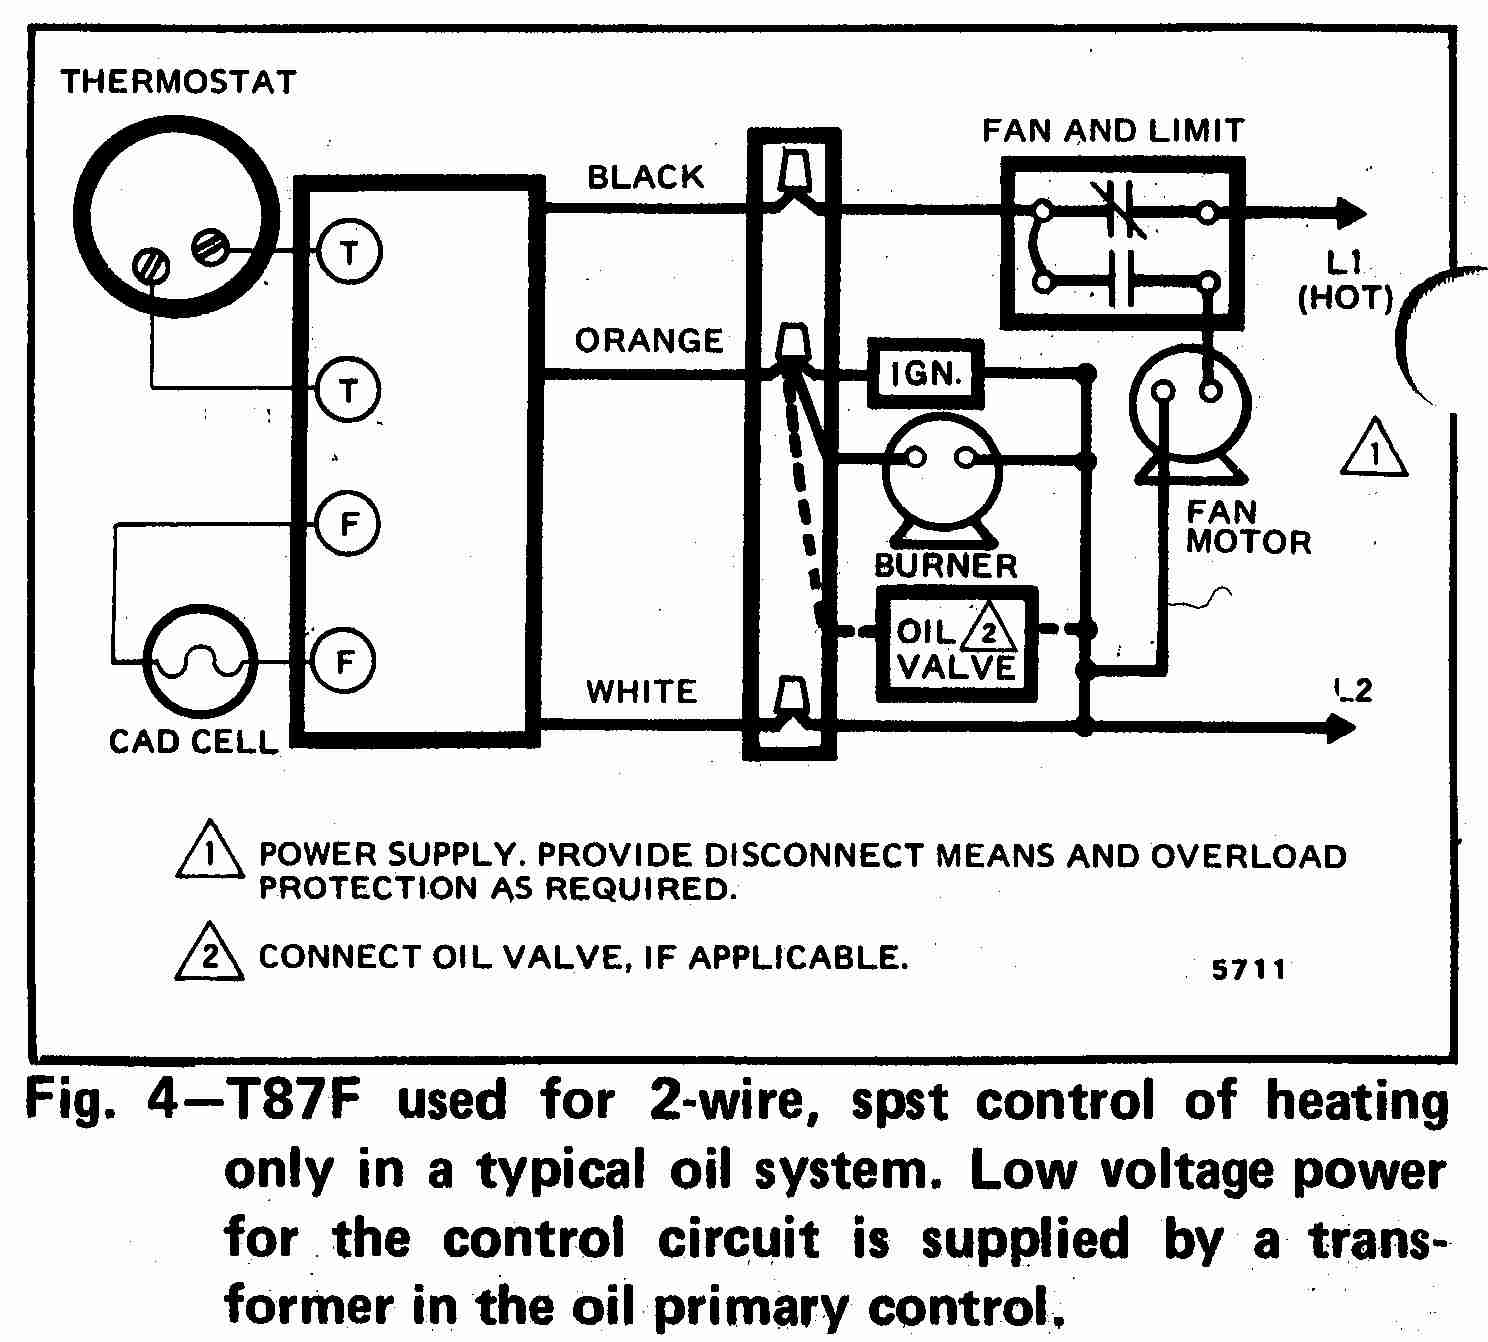 TT_T87F_0002_2W_DJF room thermostat wiring diagrams for hvac systems imit boiler thermostat wiring diagram at cos-gaming.co